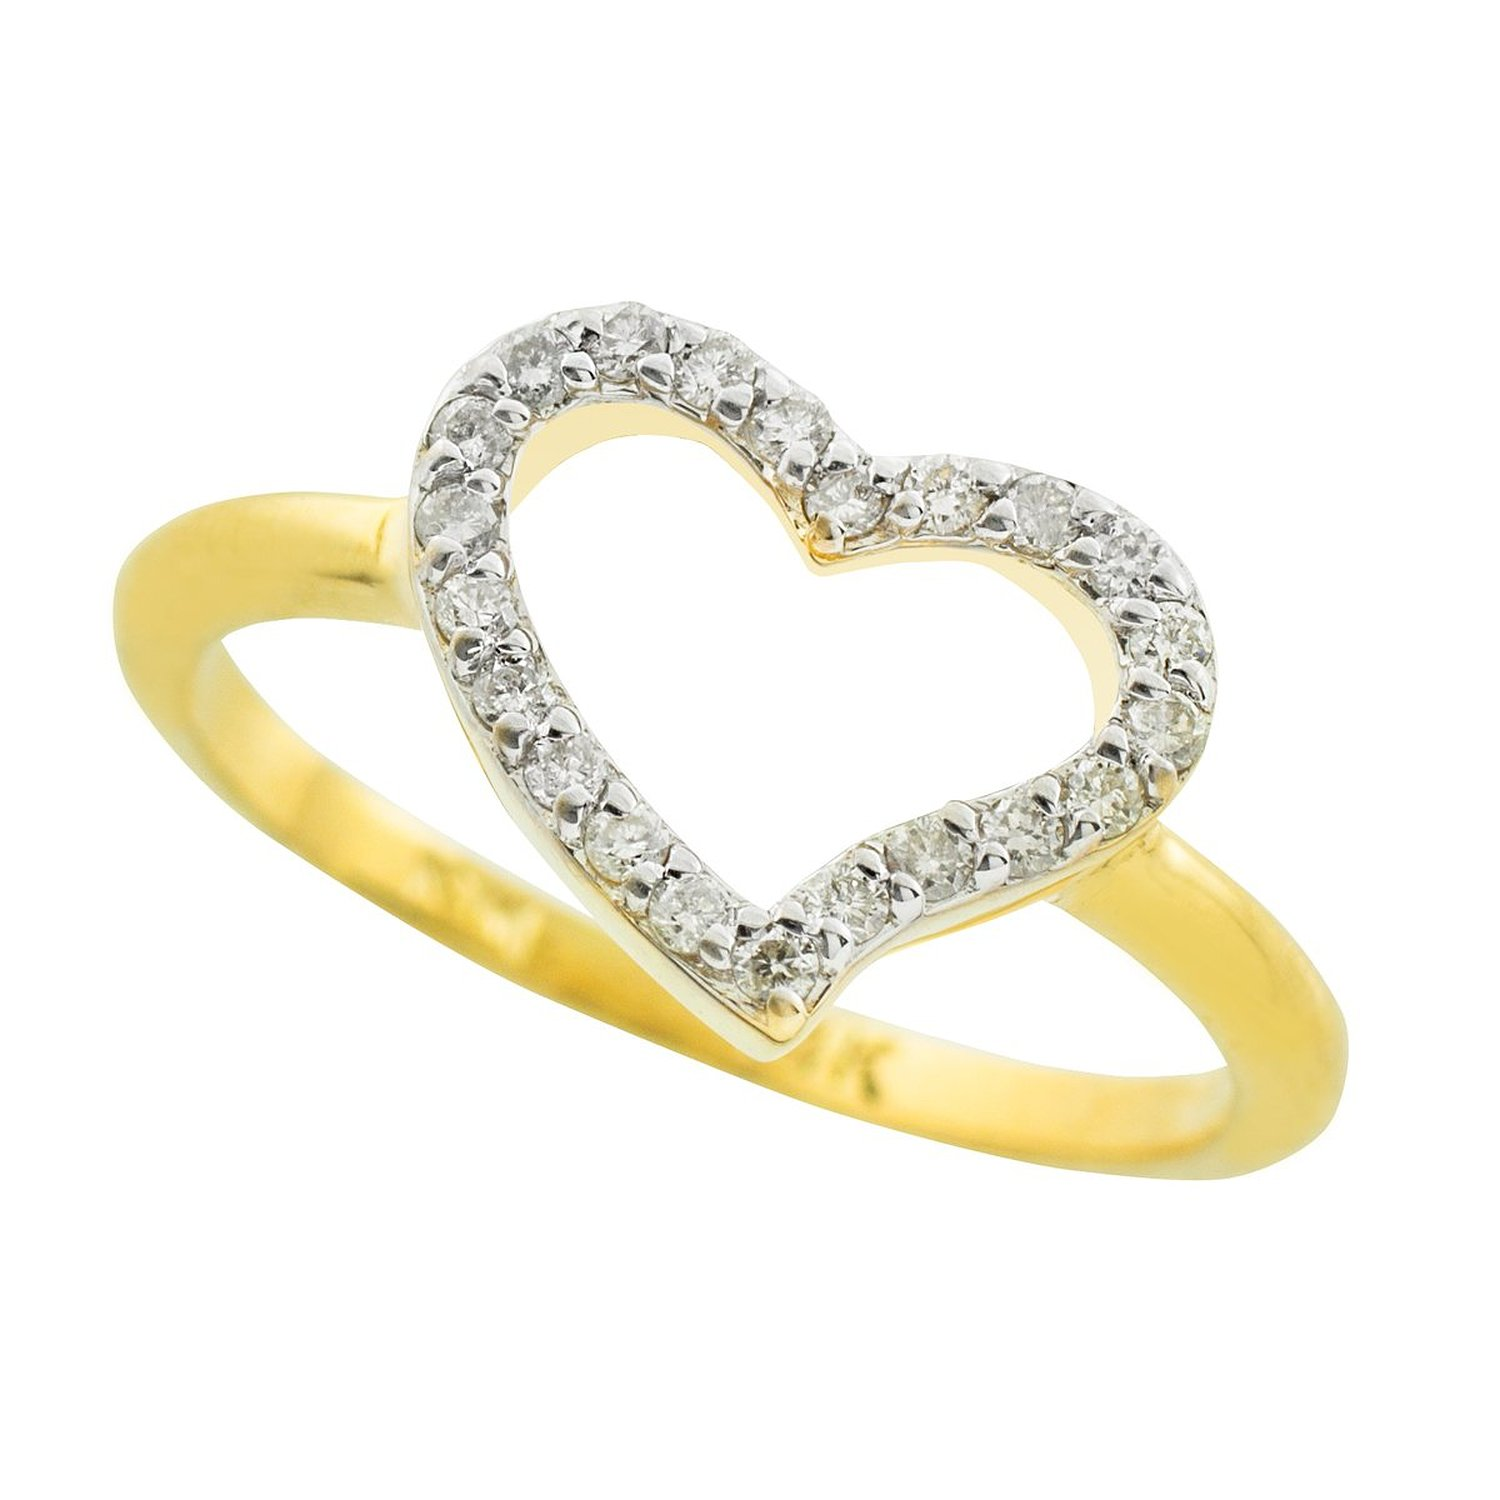 Amazon.com: dainty 10k yellow gold cz open heart ring: jewelry